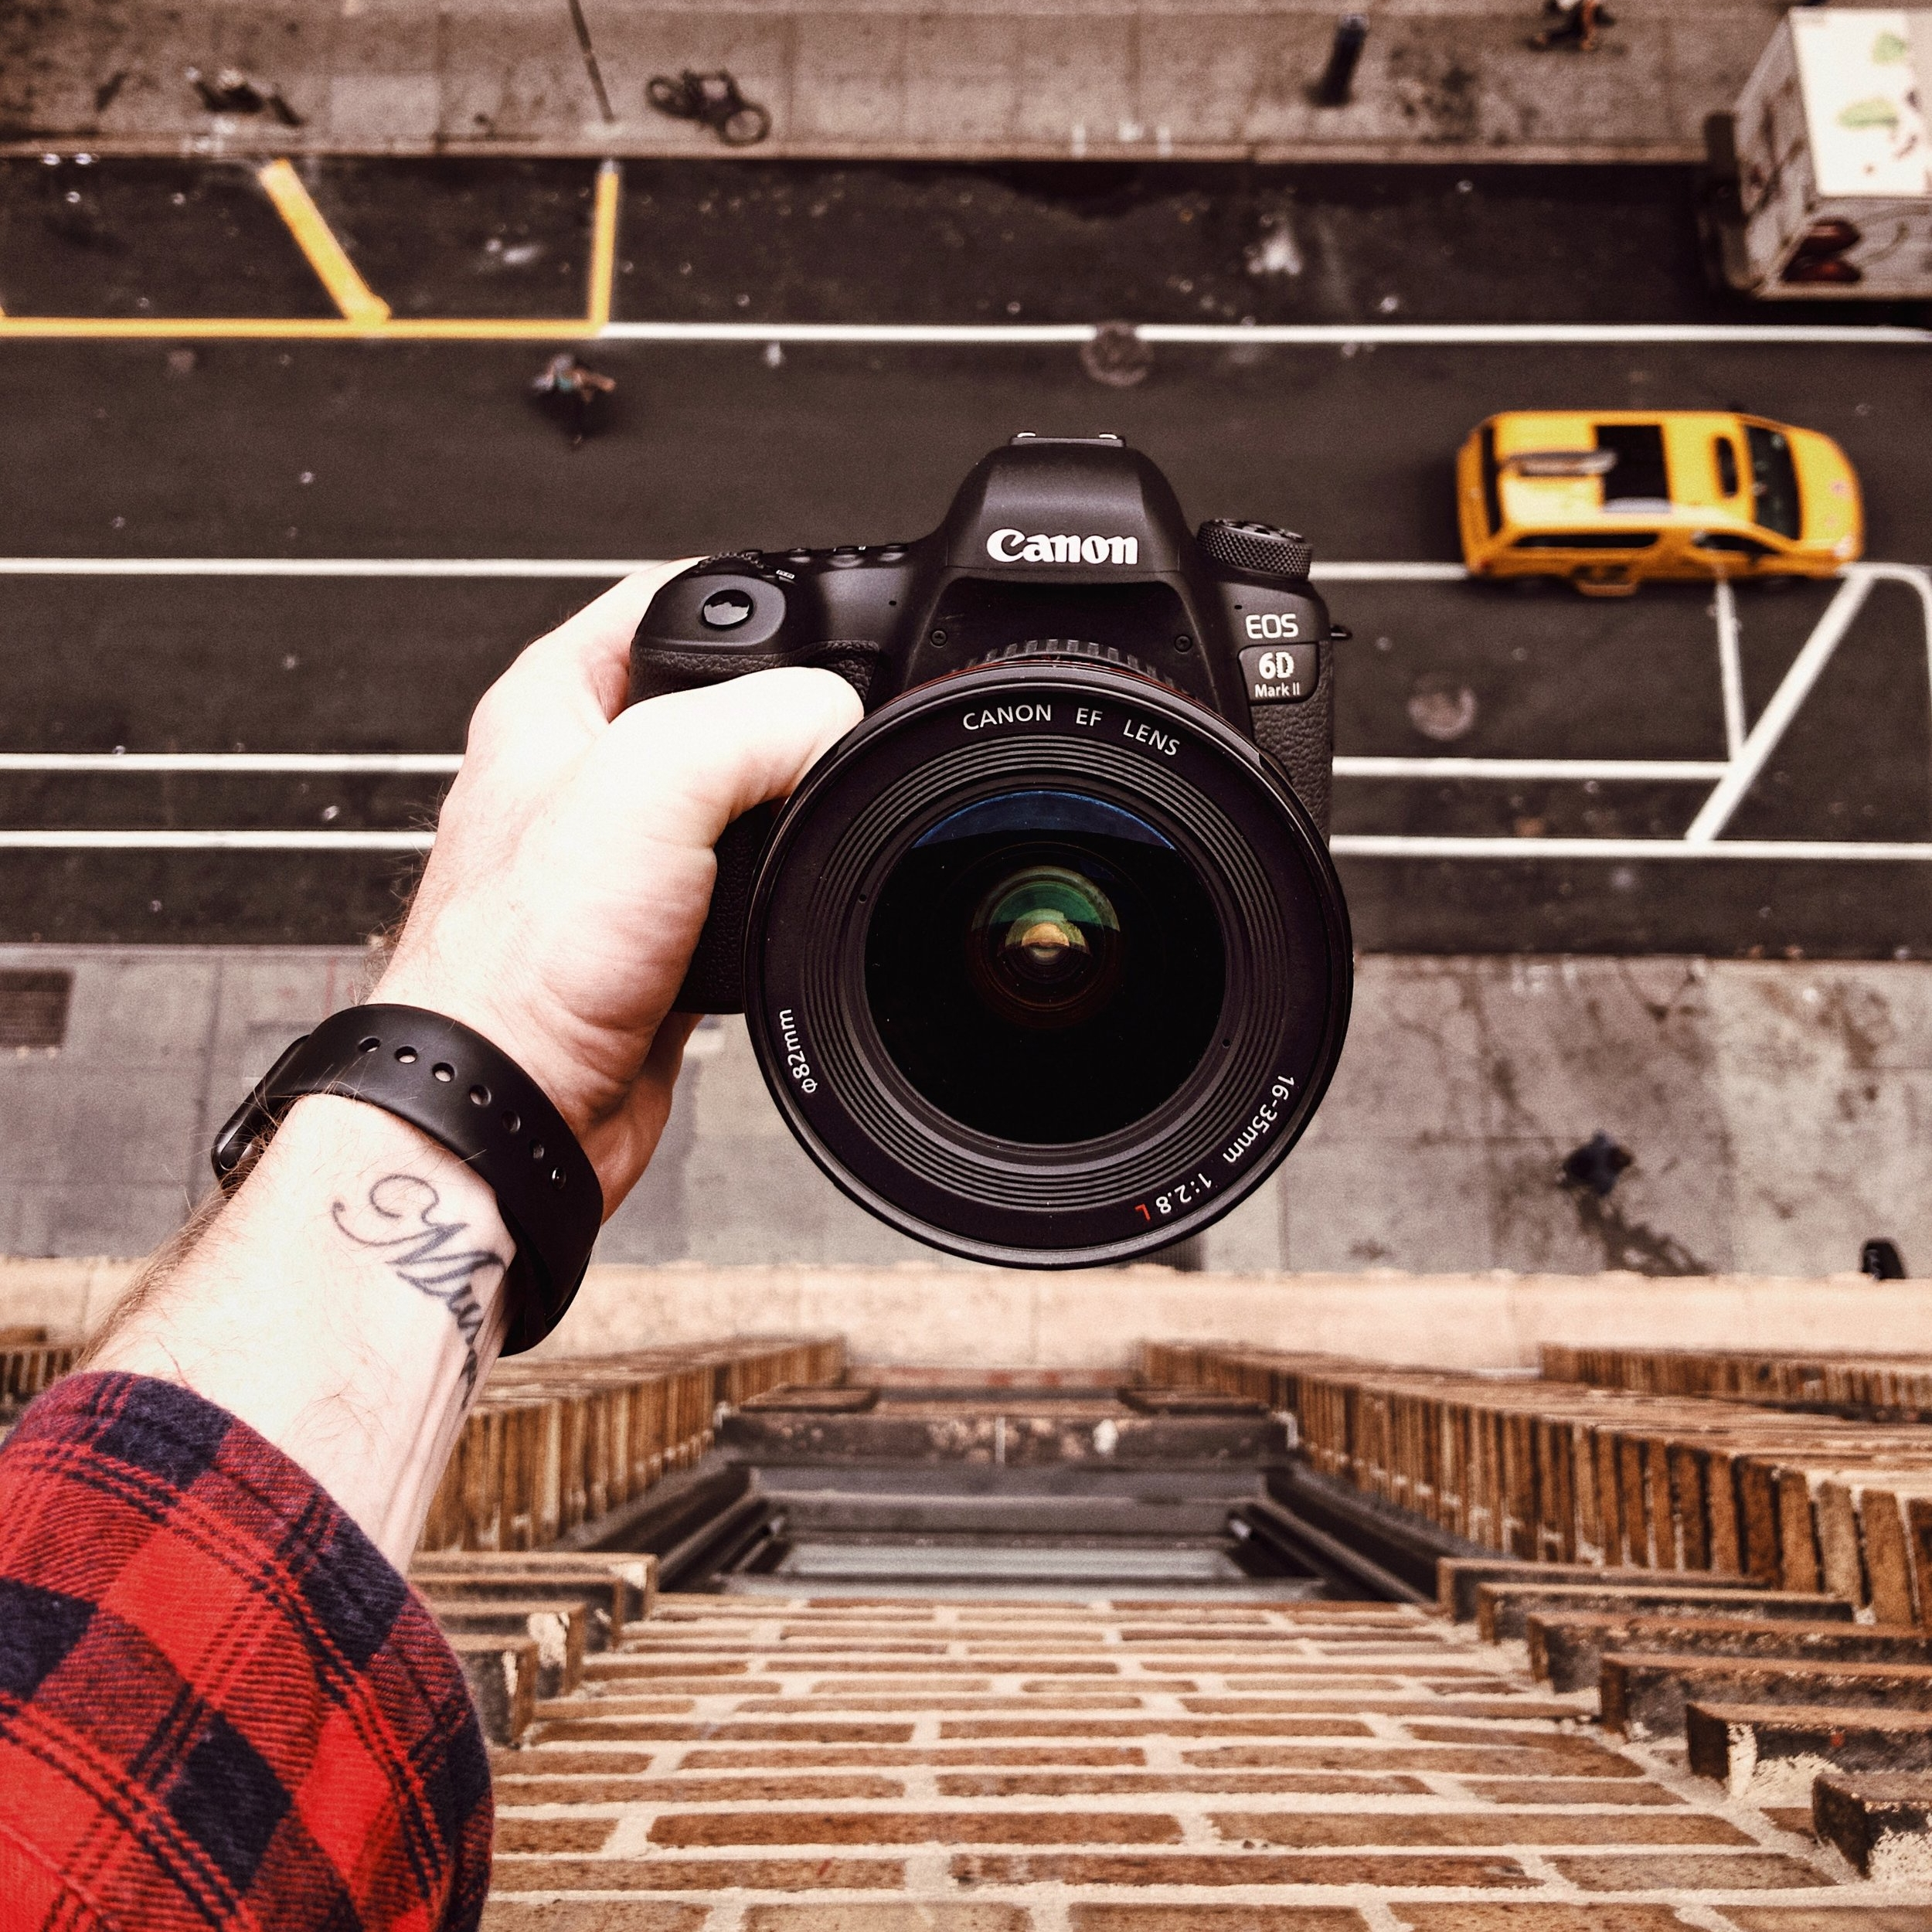 PHOTOGRAPHY - We strive to be as well-rounded as possible. We understand that certain projects require still photos over video, so we work with you to come up with the best approach that suits your needs and goals.